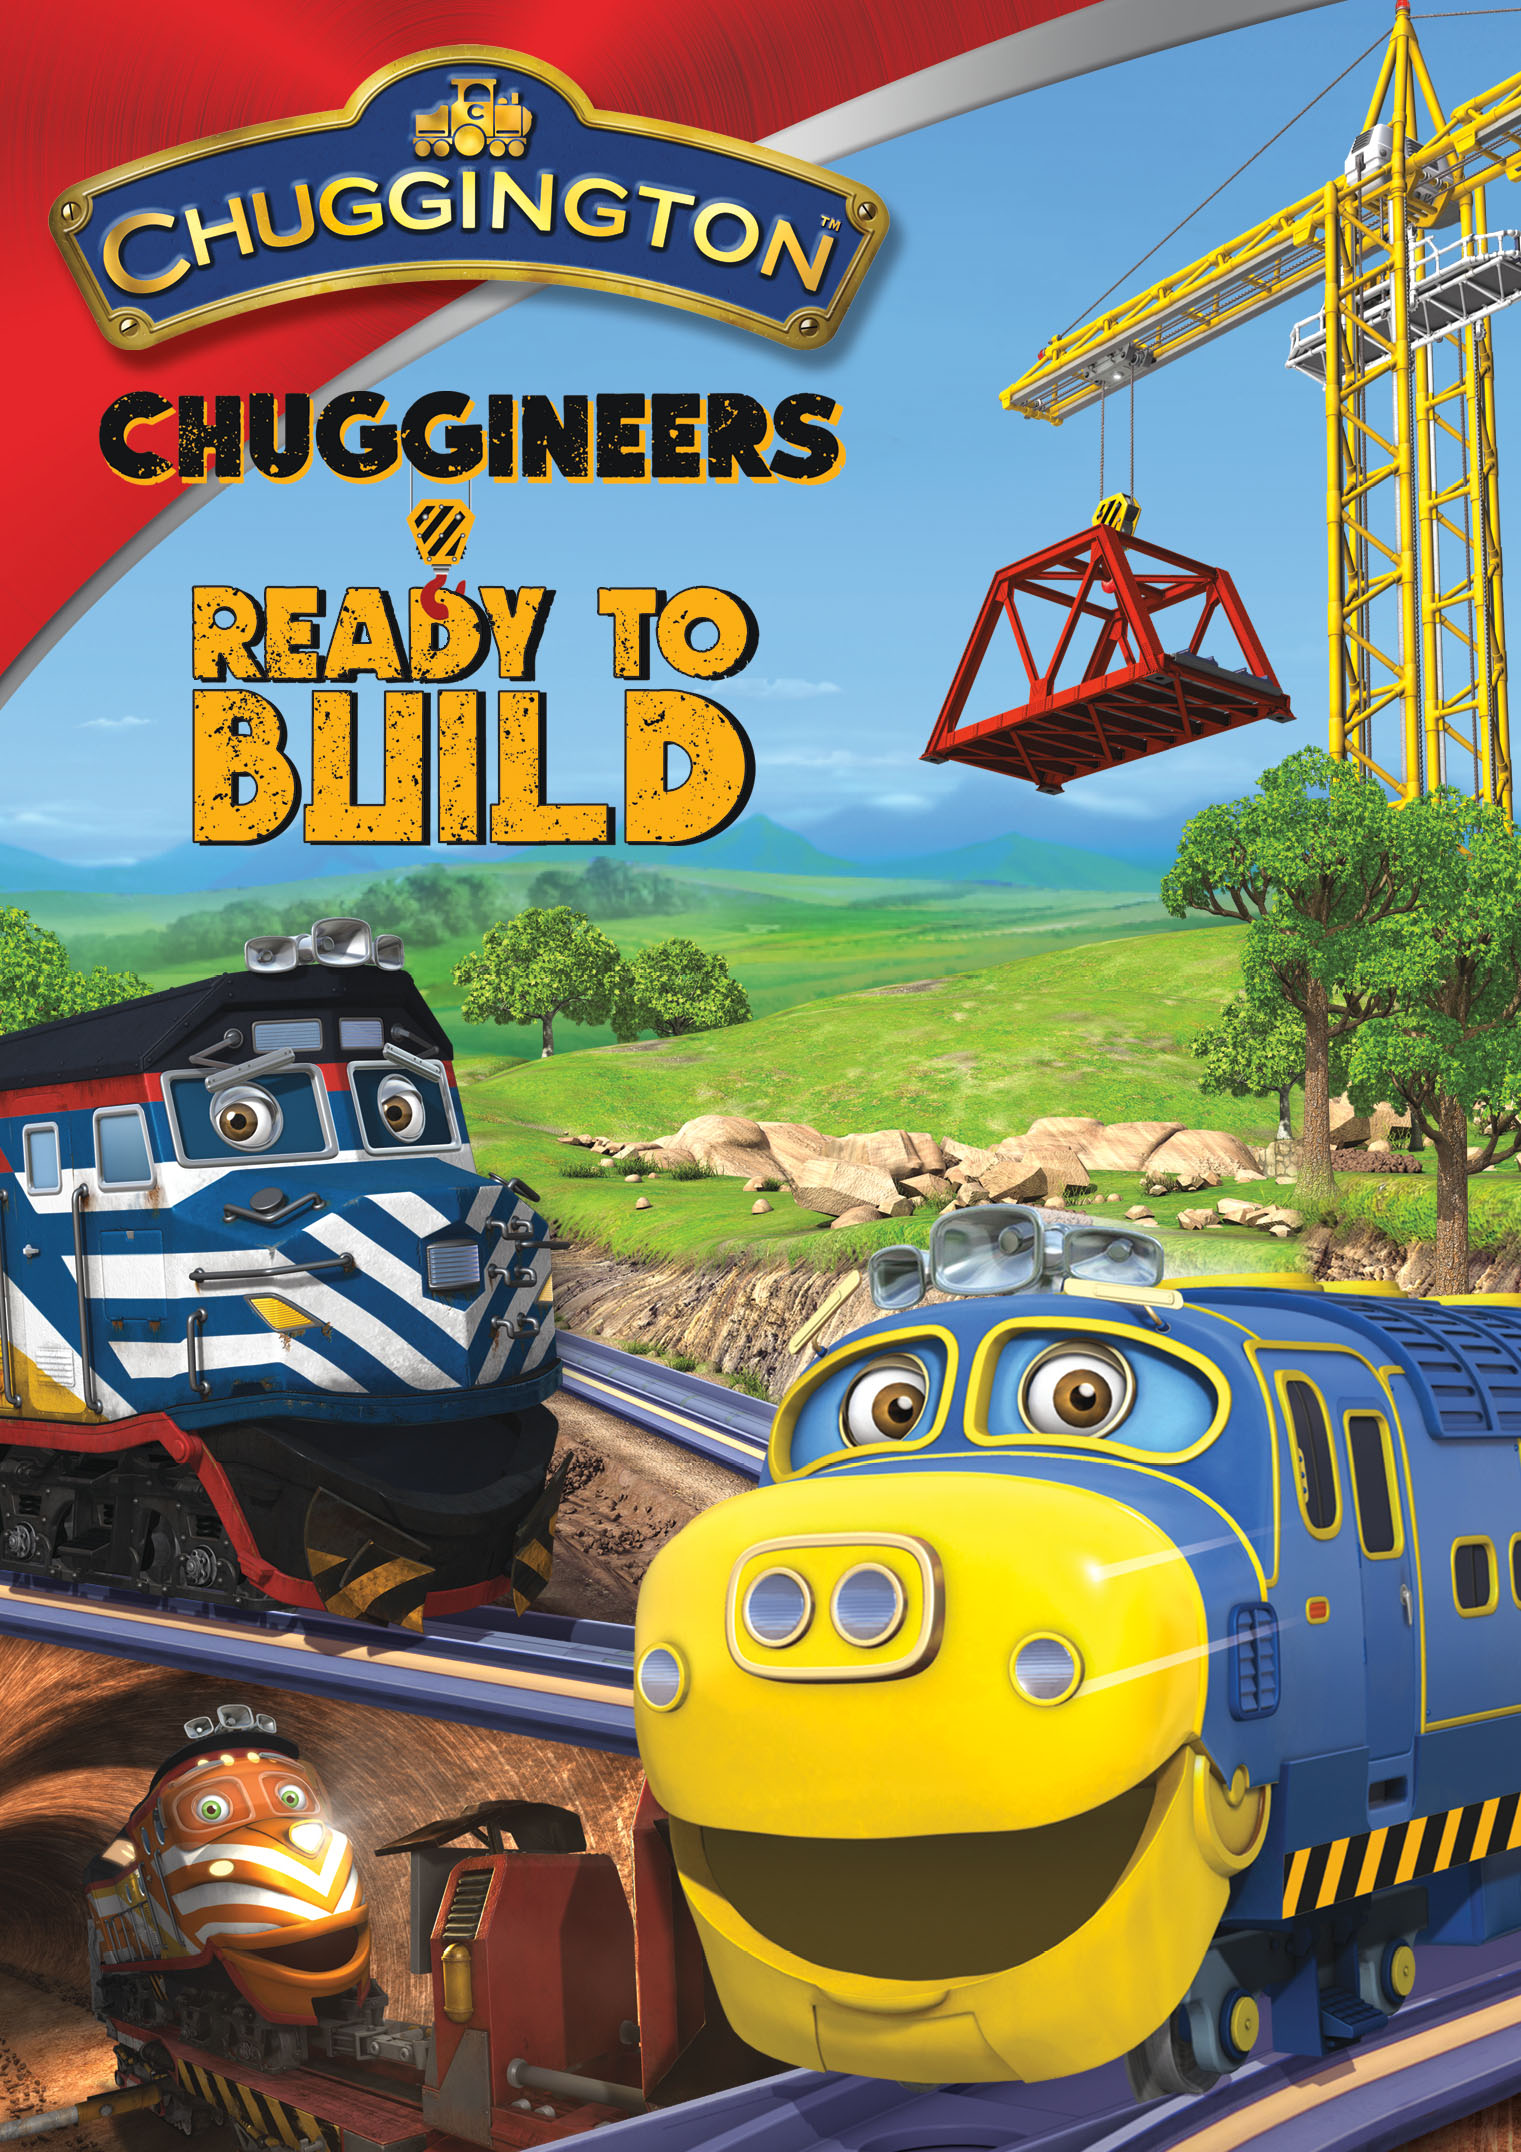 Chuggington Chuggineers Ready To Build DVD